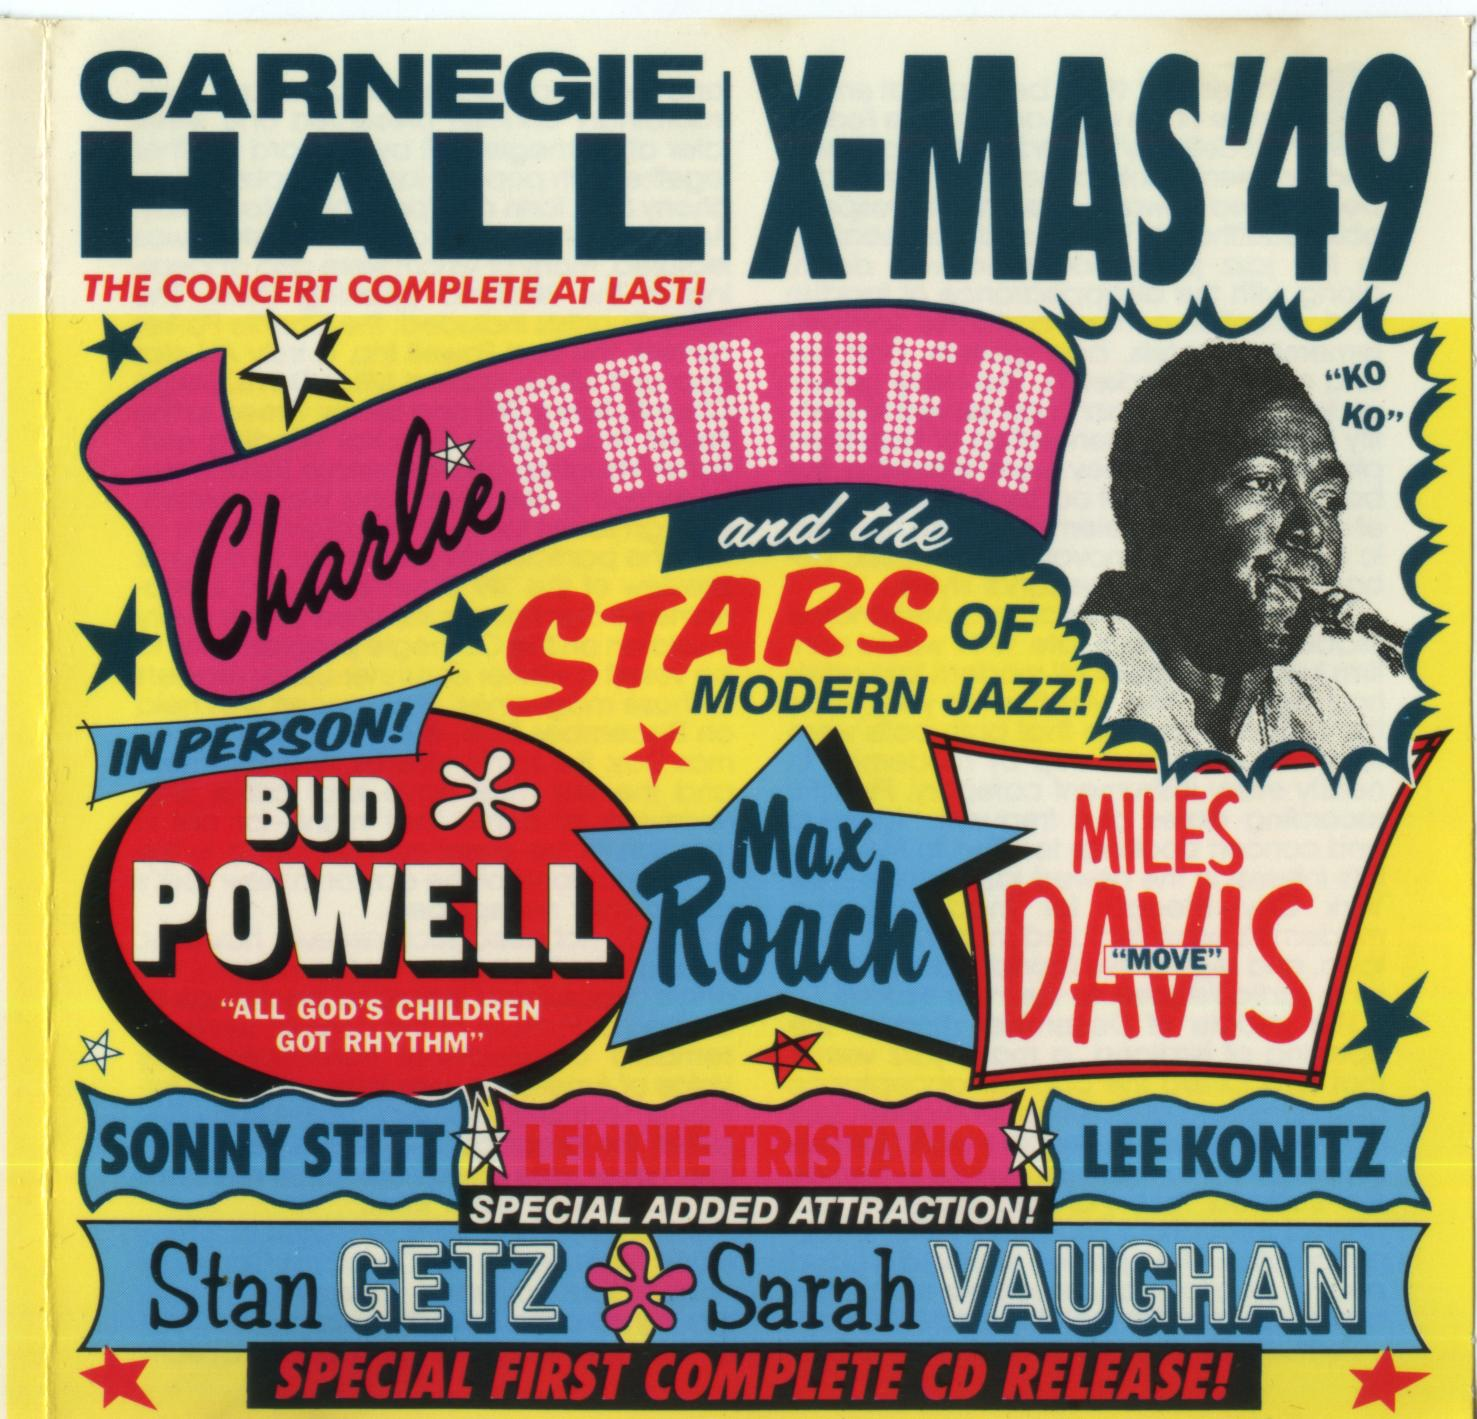 Charlie Parker and the Stars of Modern Jazz of Carnegie Hall Christmas 1949